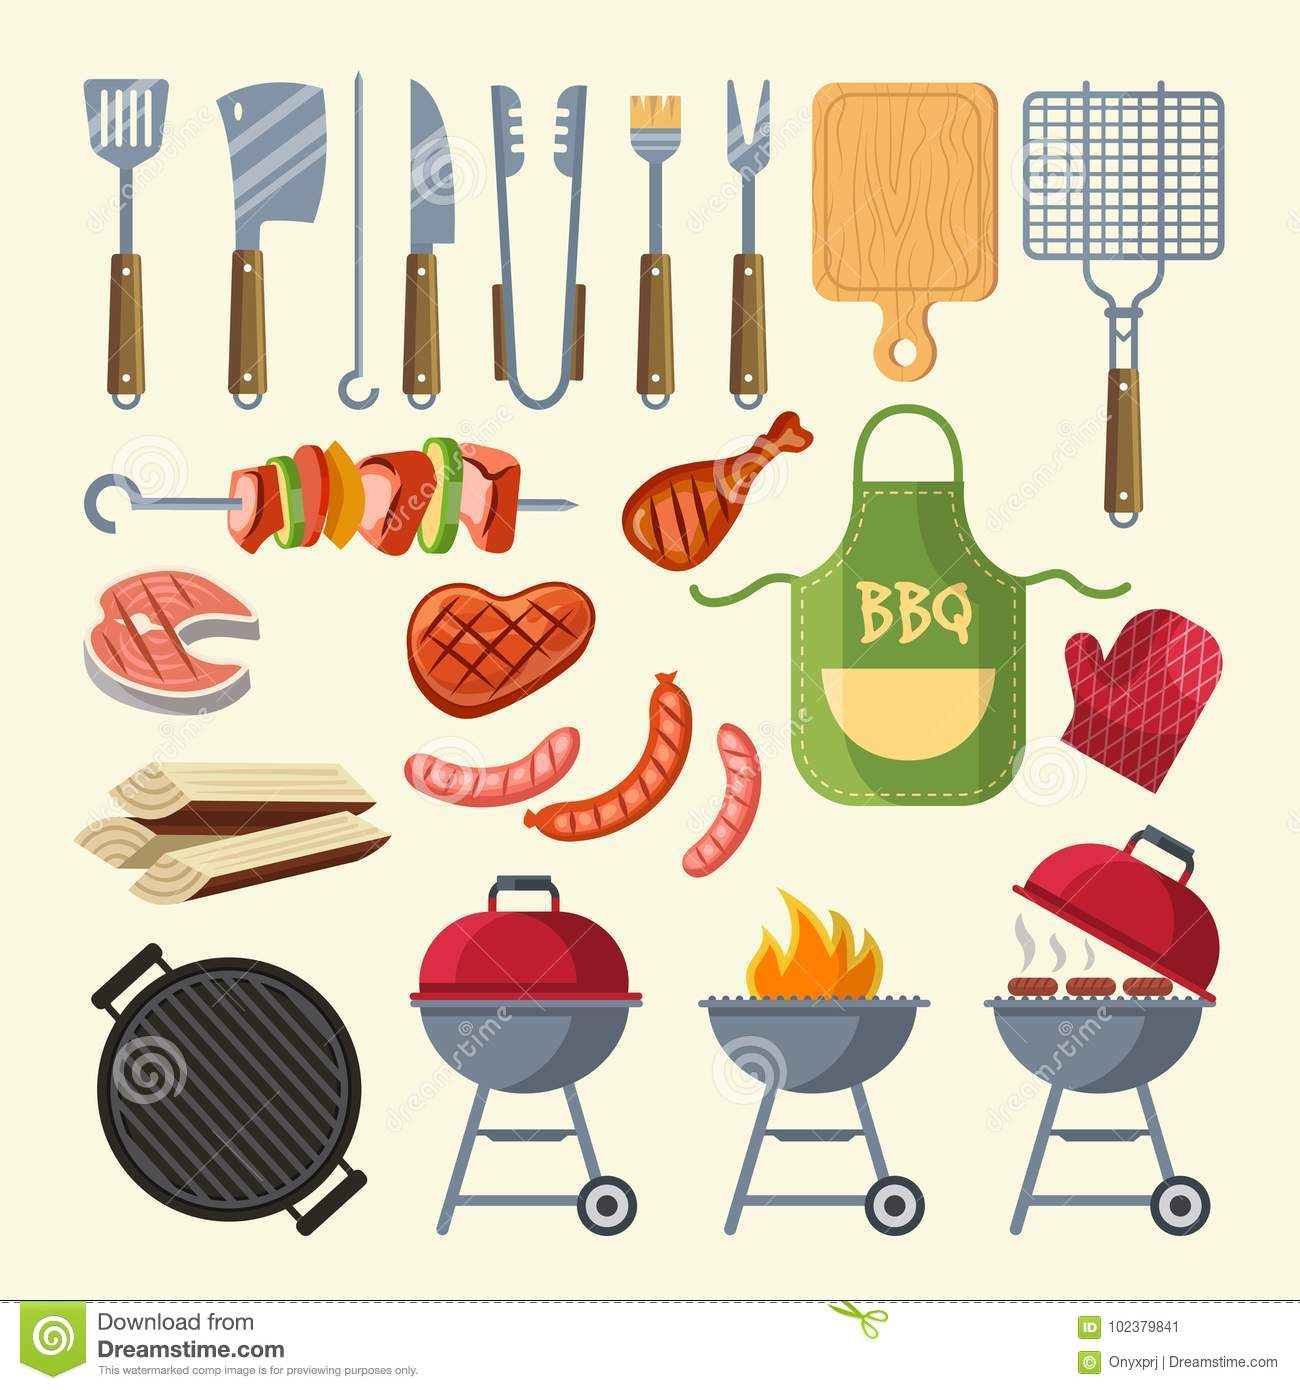 Vector cartoon illustration of meat, sauce, grill and other elements for bbq party